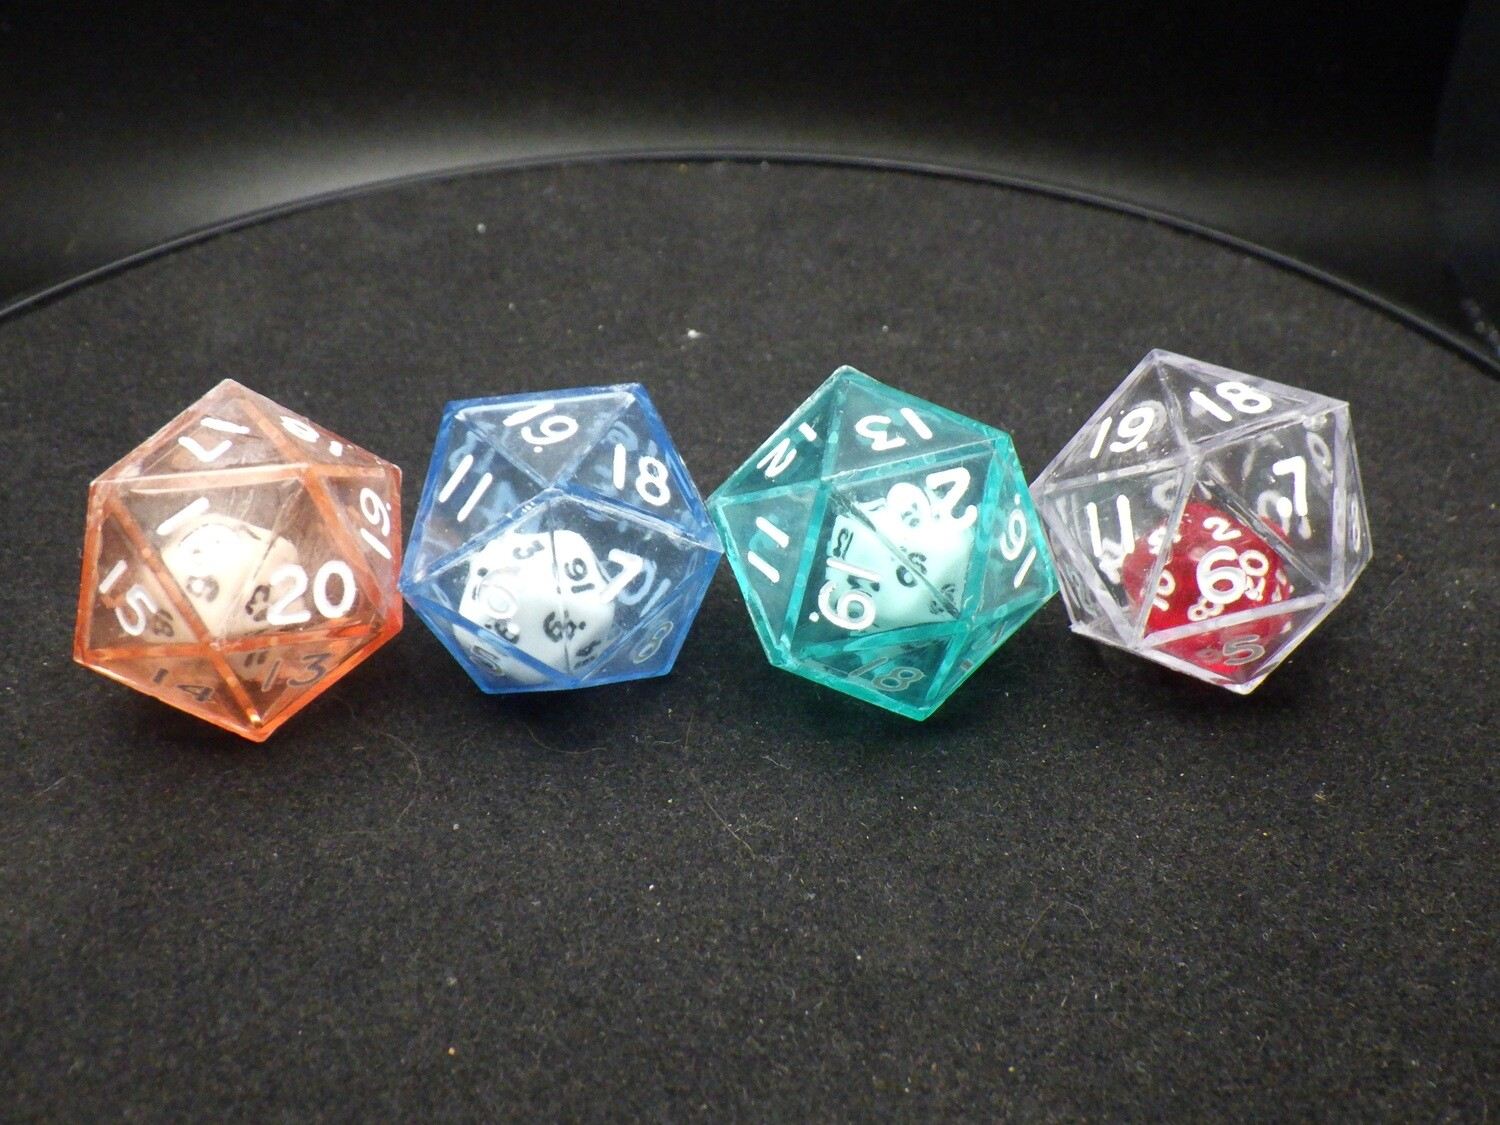 Double D20 - Small Twenty Sided Die in Larger Transparent Twenty Sided RPG Tabletop Gaming Roleplay CCG Board Card Games